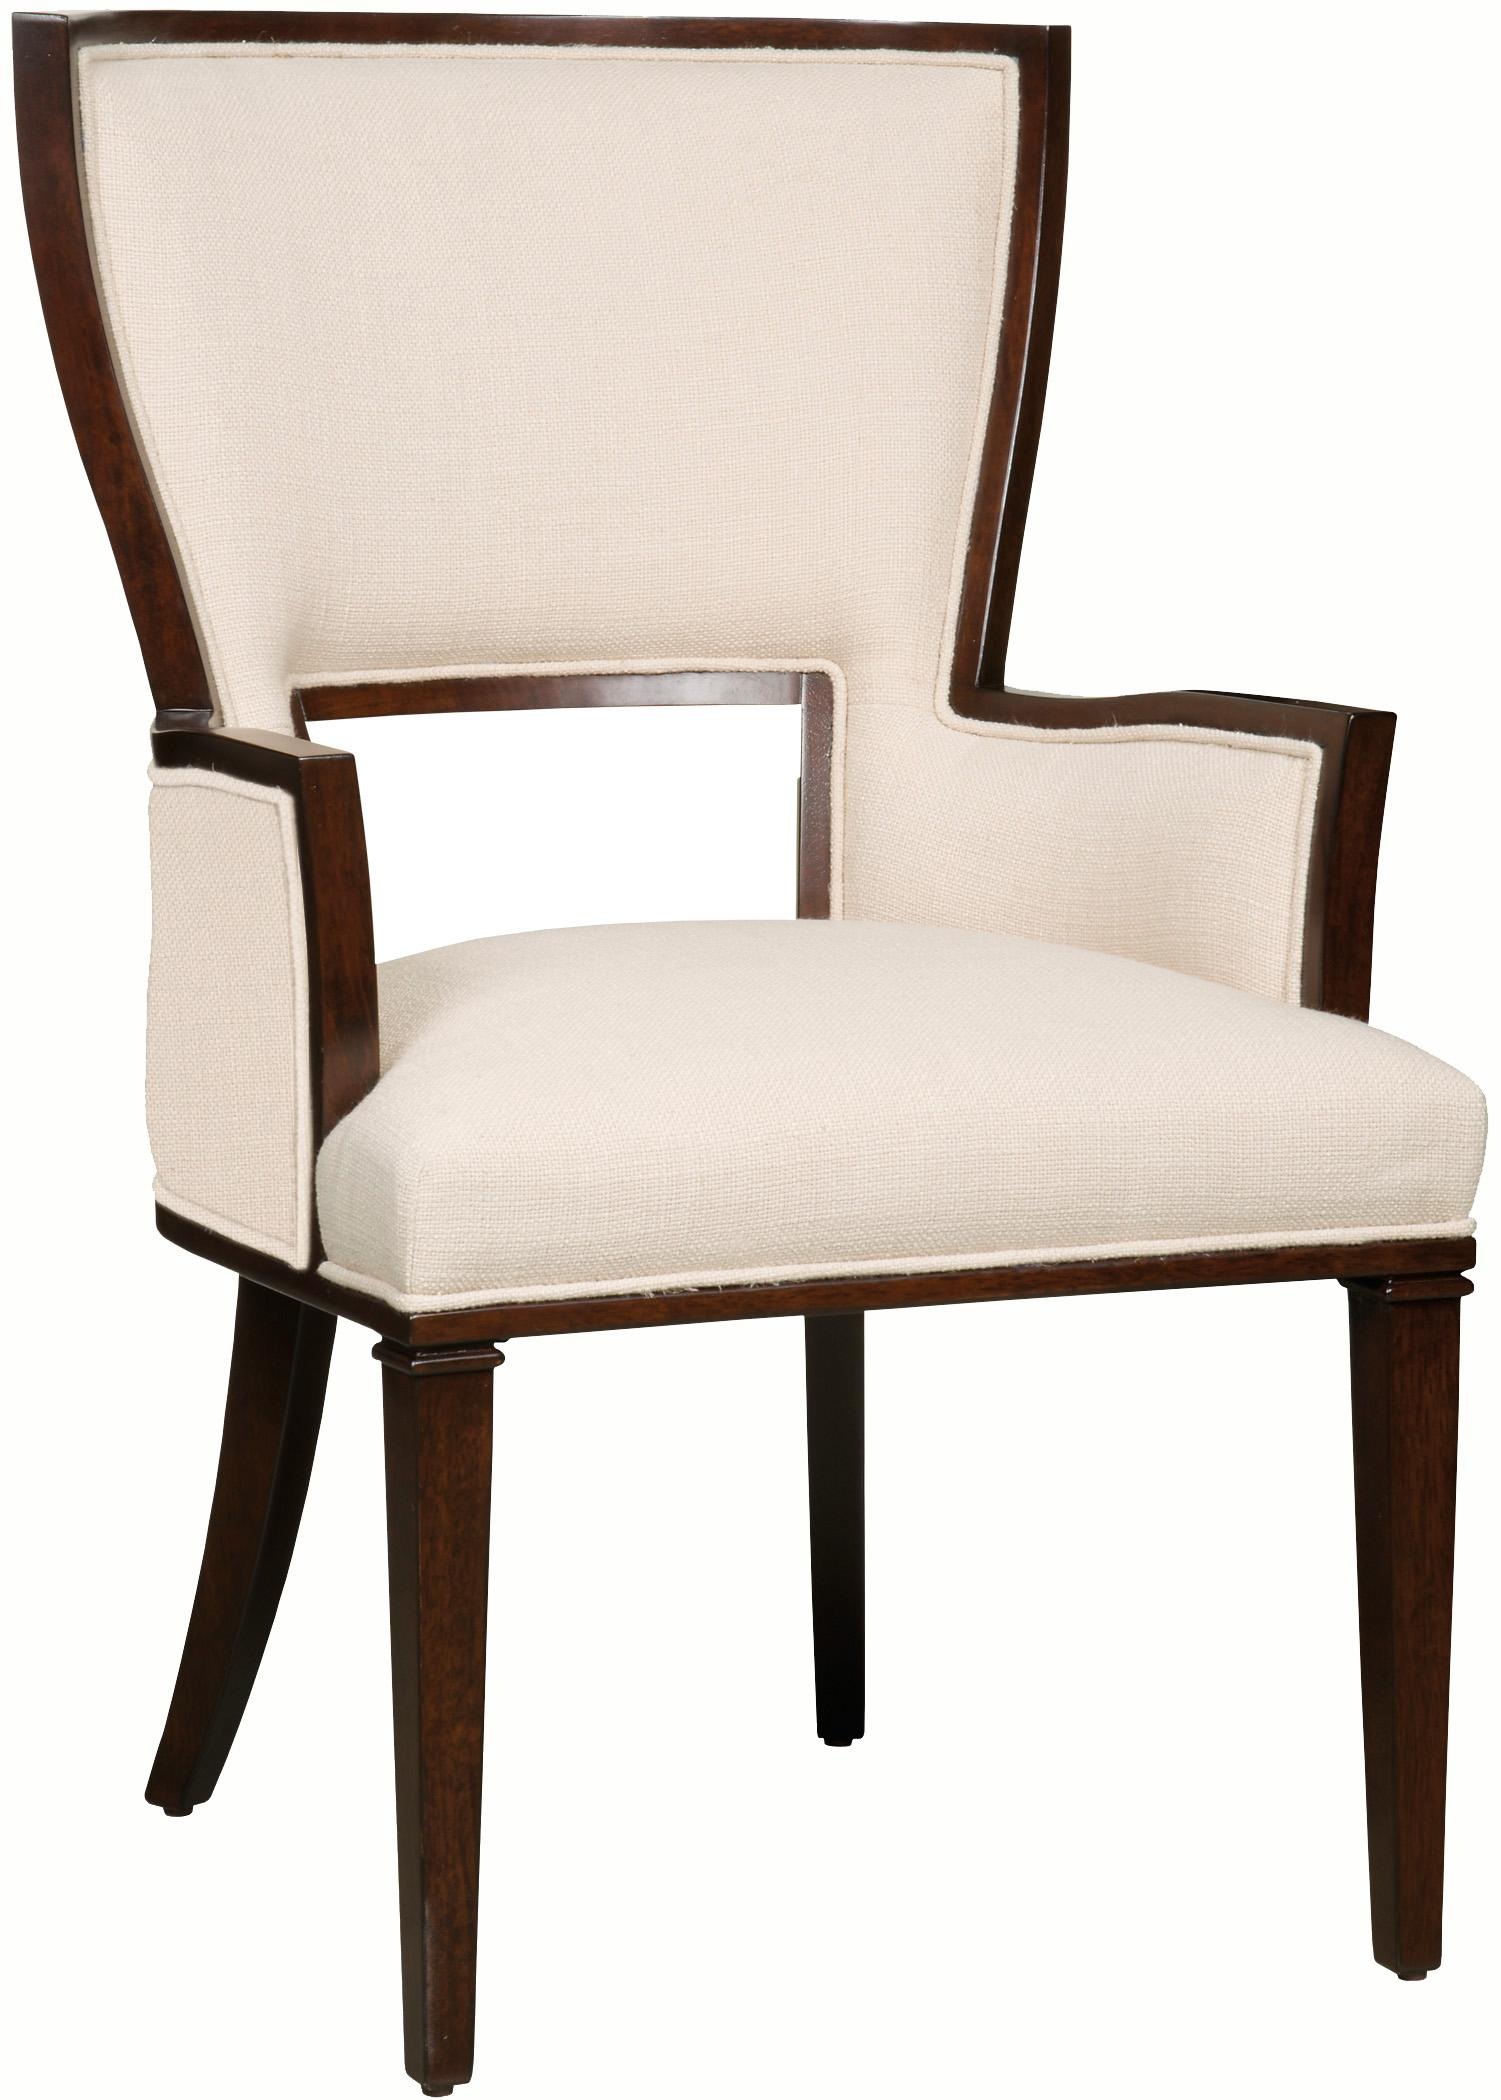 Hamilton Home Decorator Chairs Dining Arm Chair - Item Number: 300-350037